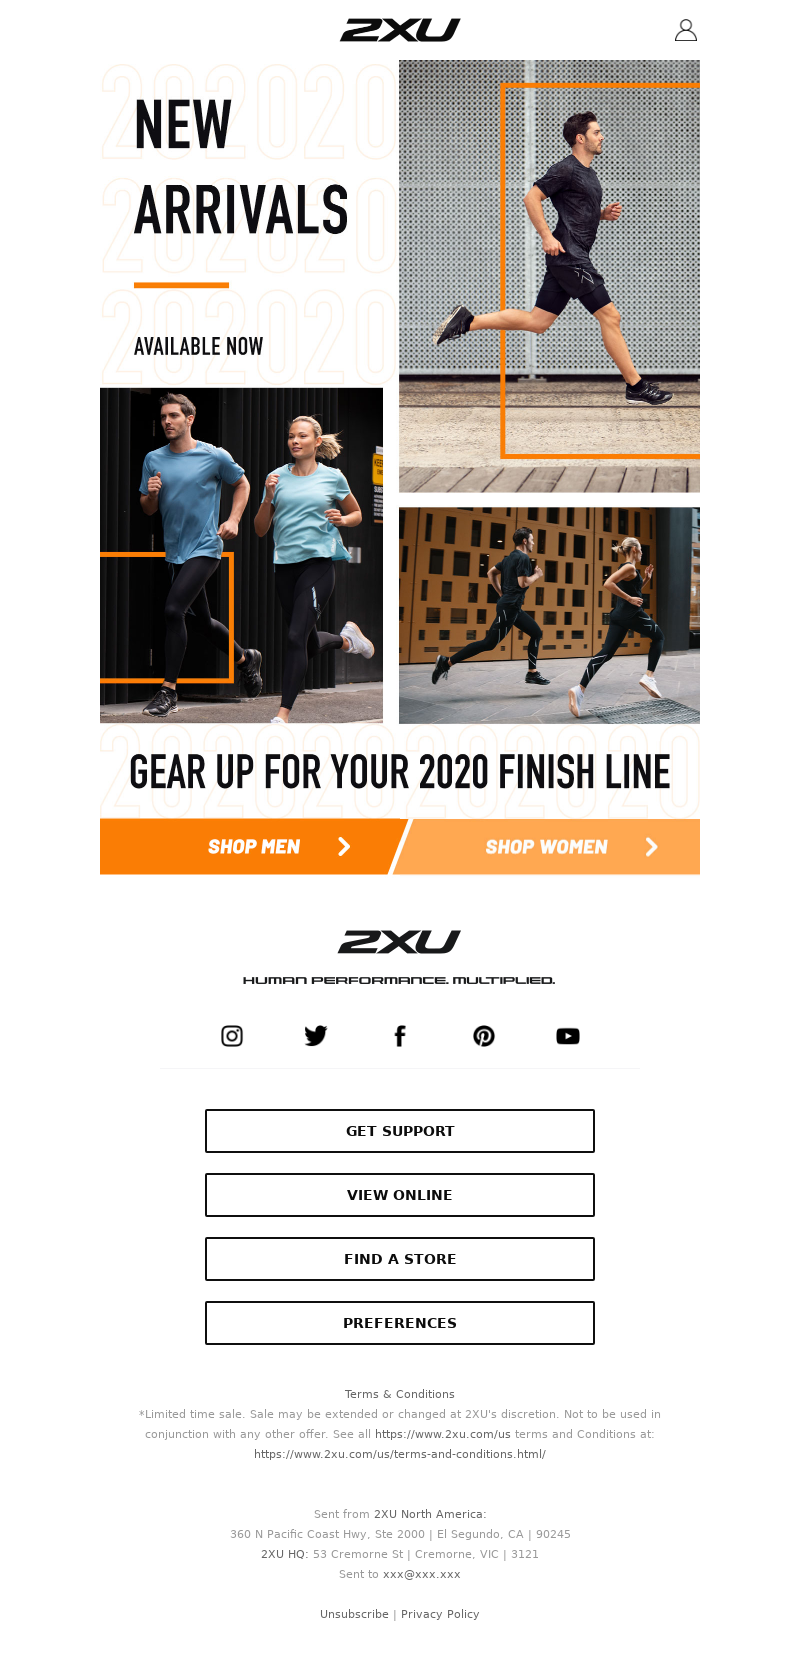 Email strategy from 2XU